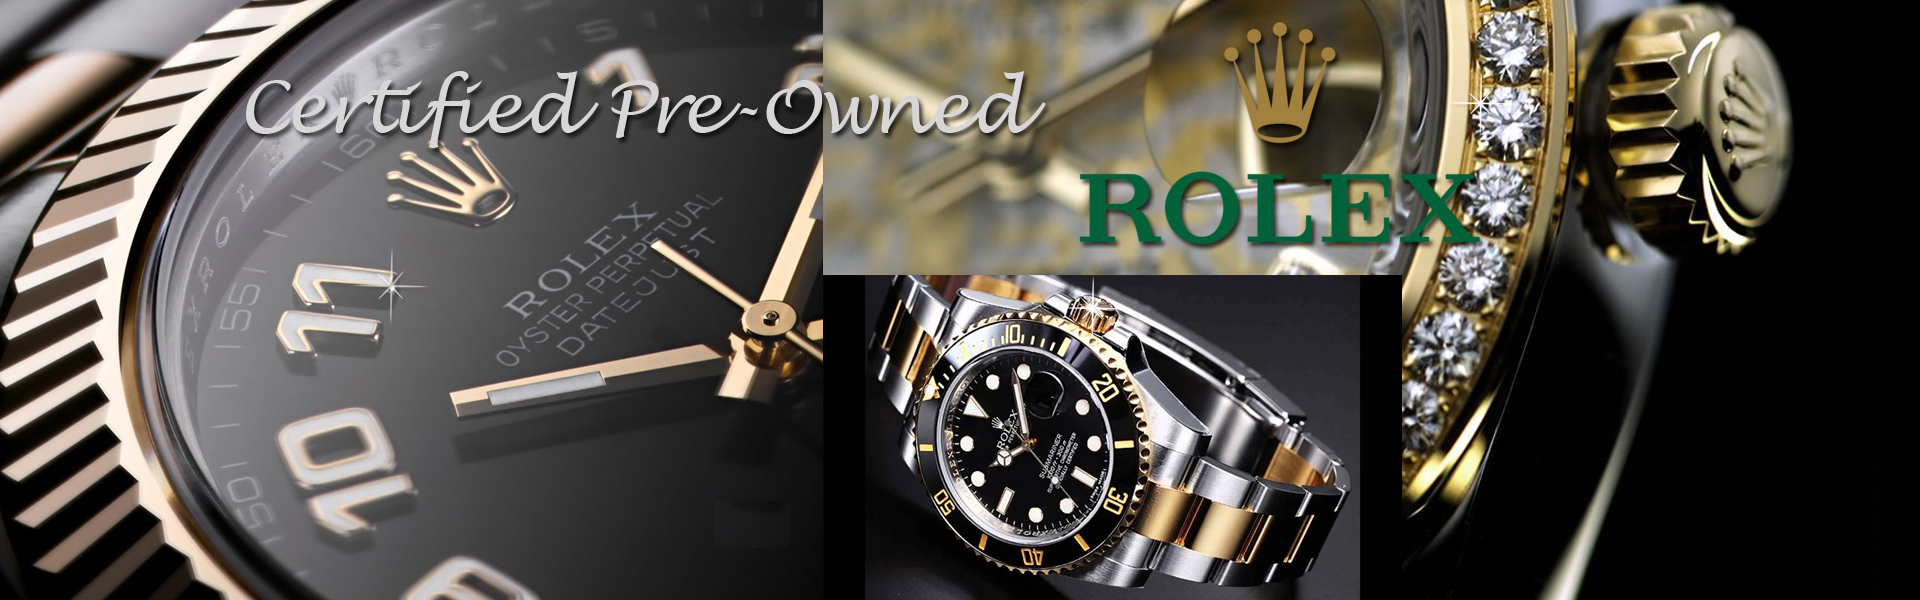 Rolex - Certified Pre-owned